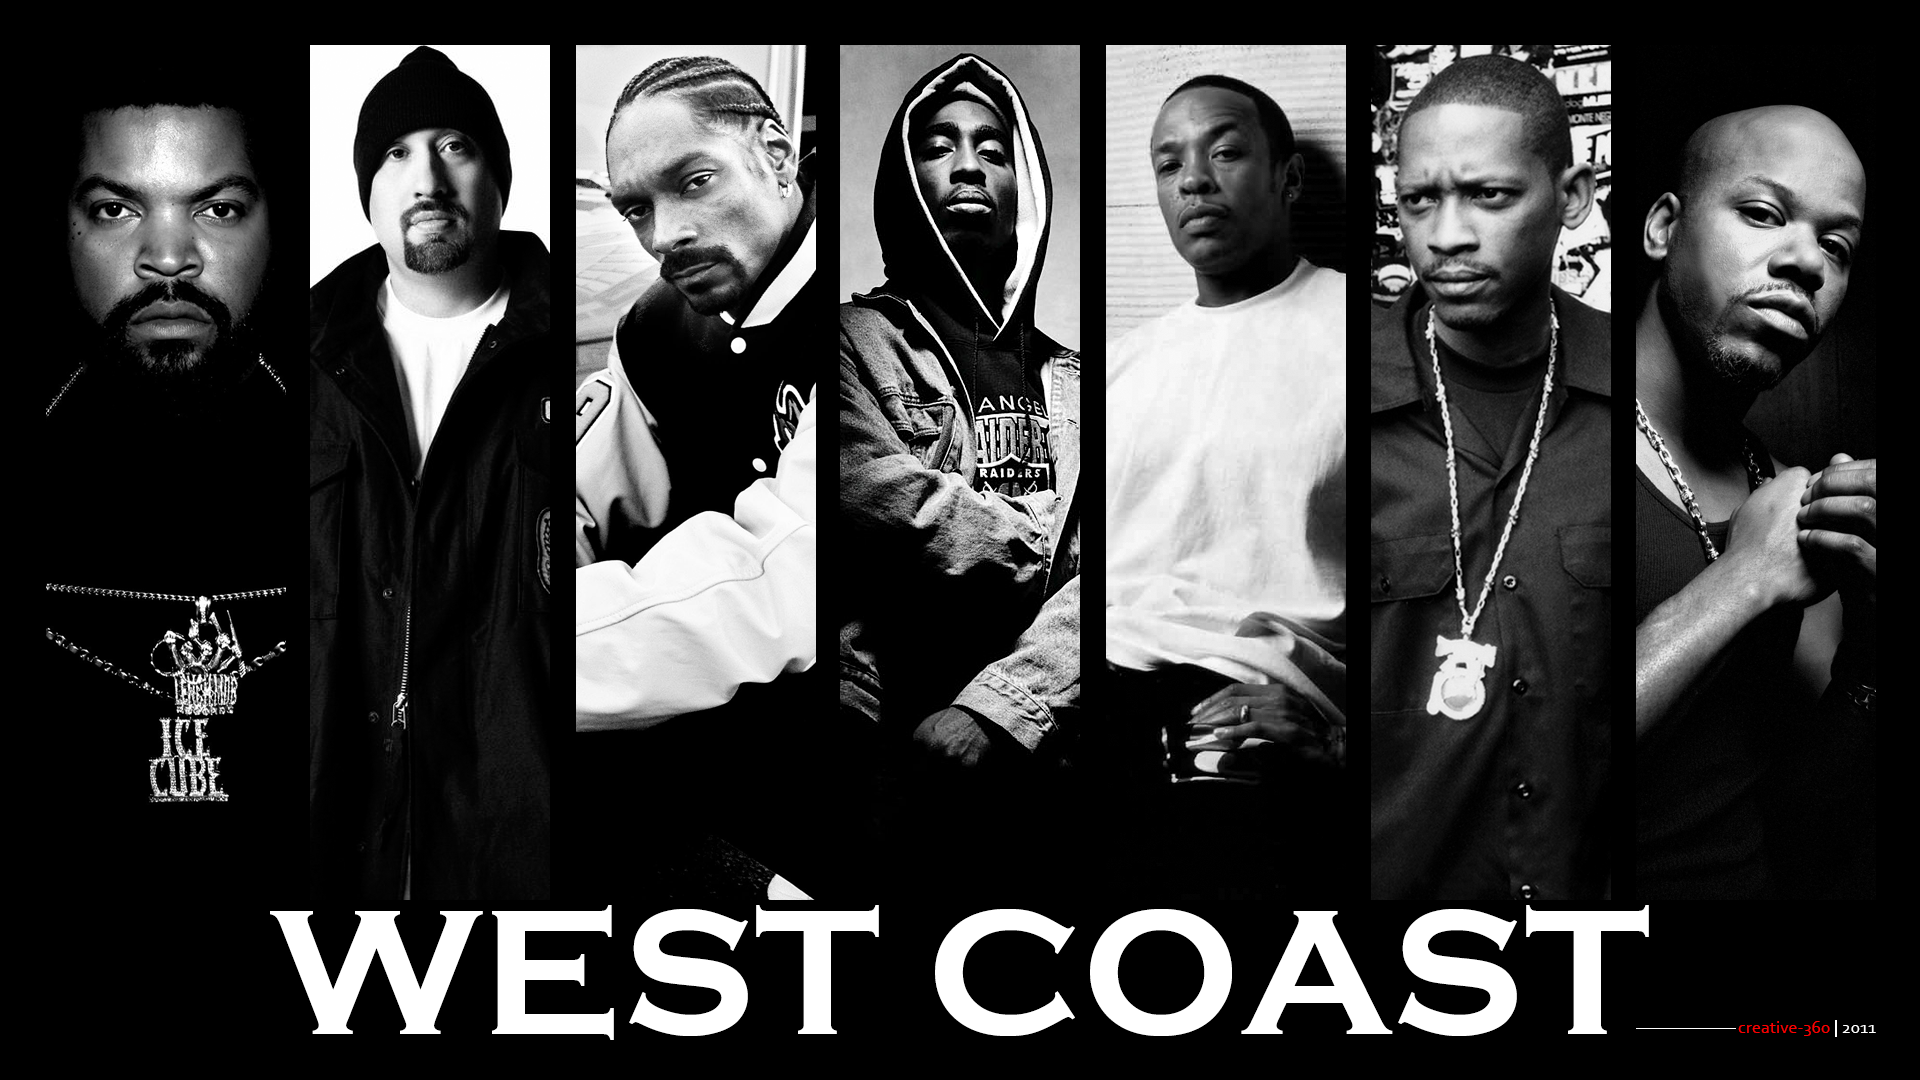 WEST COAST by creative-360West Coast Rappers Poster